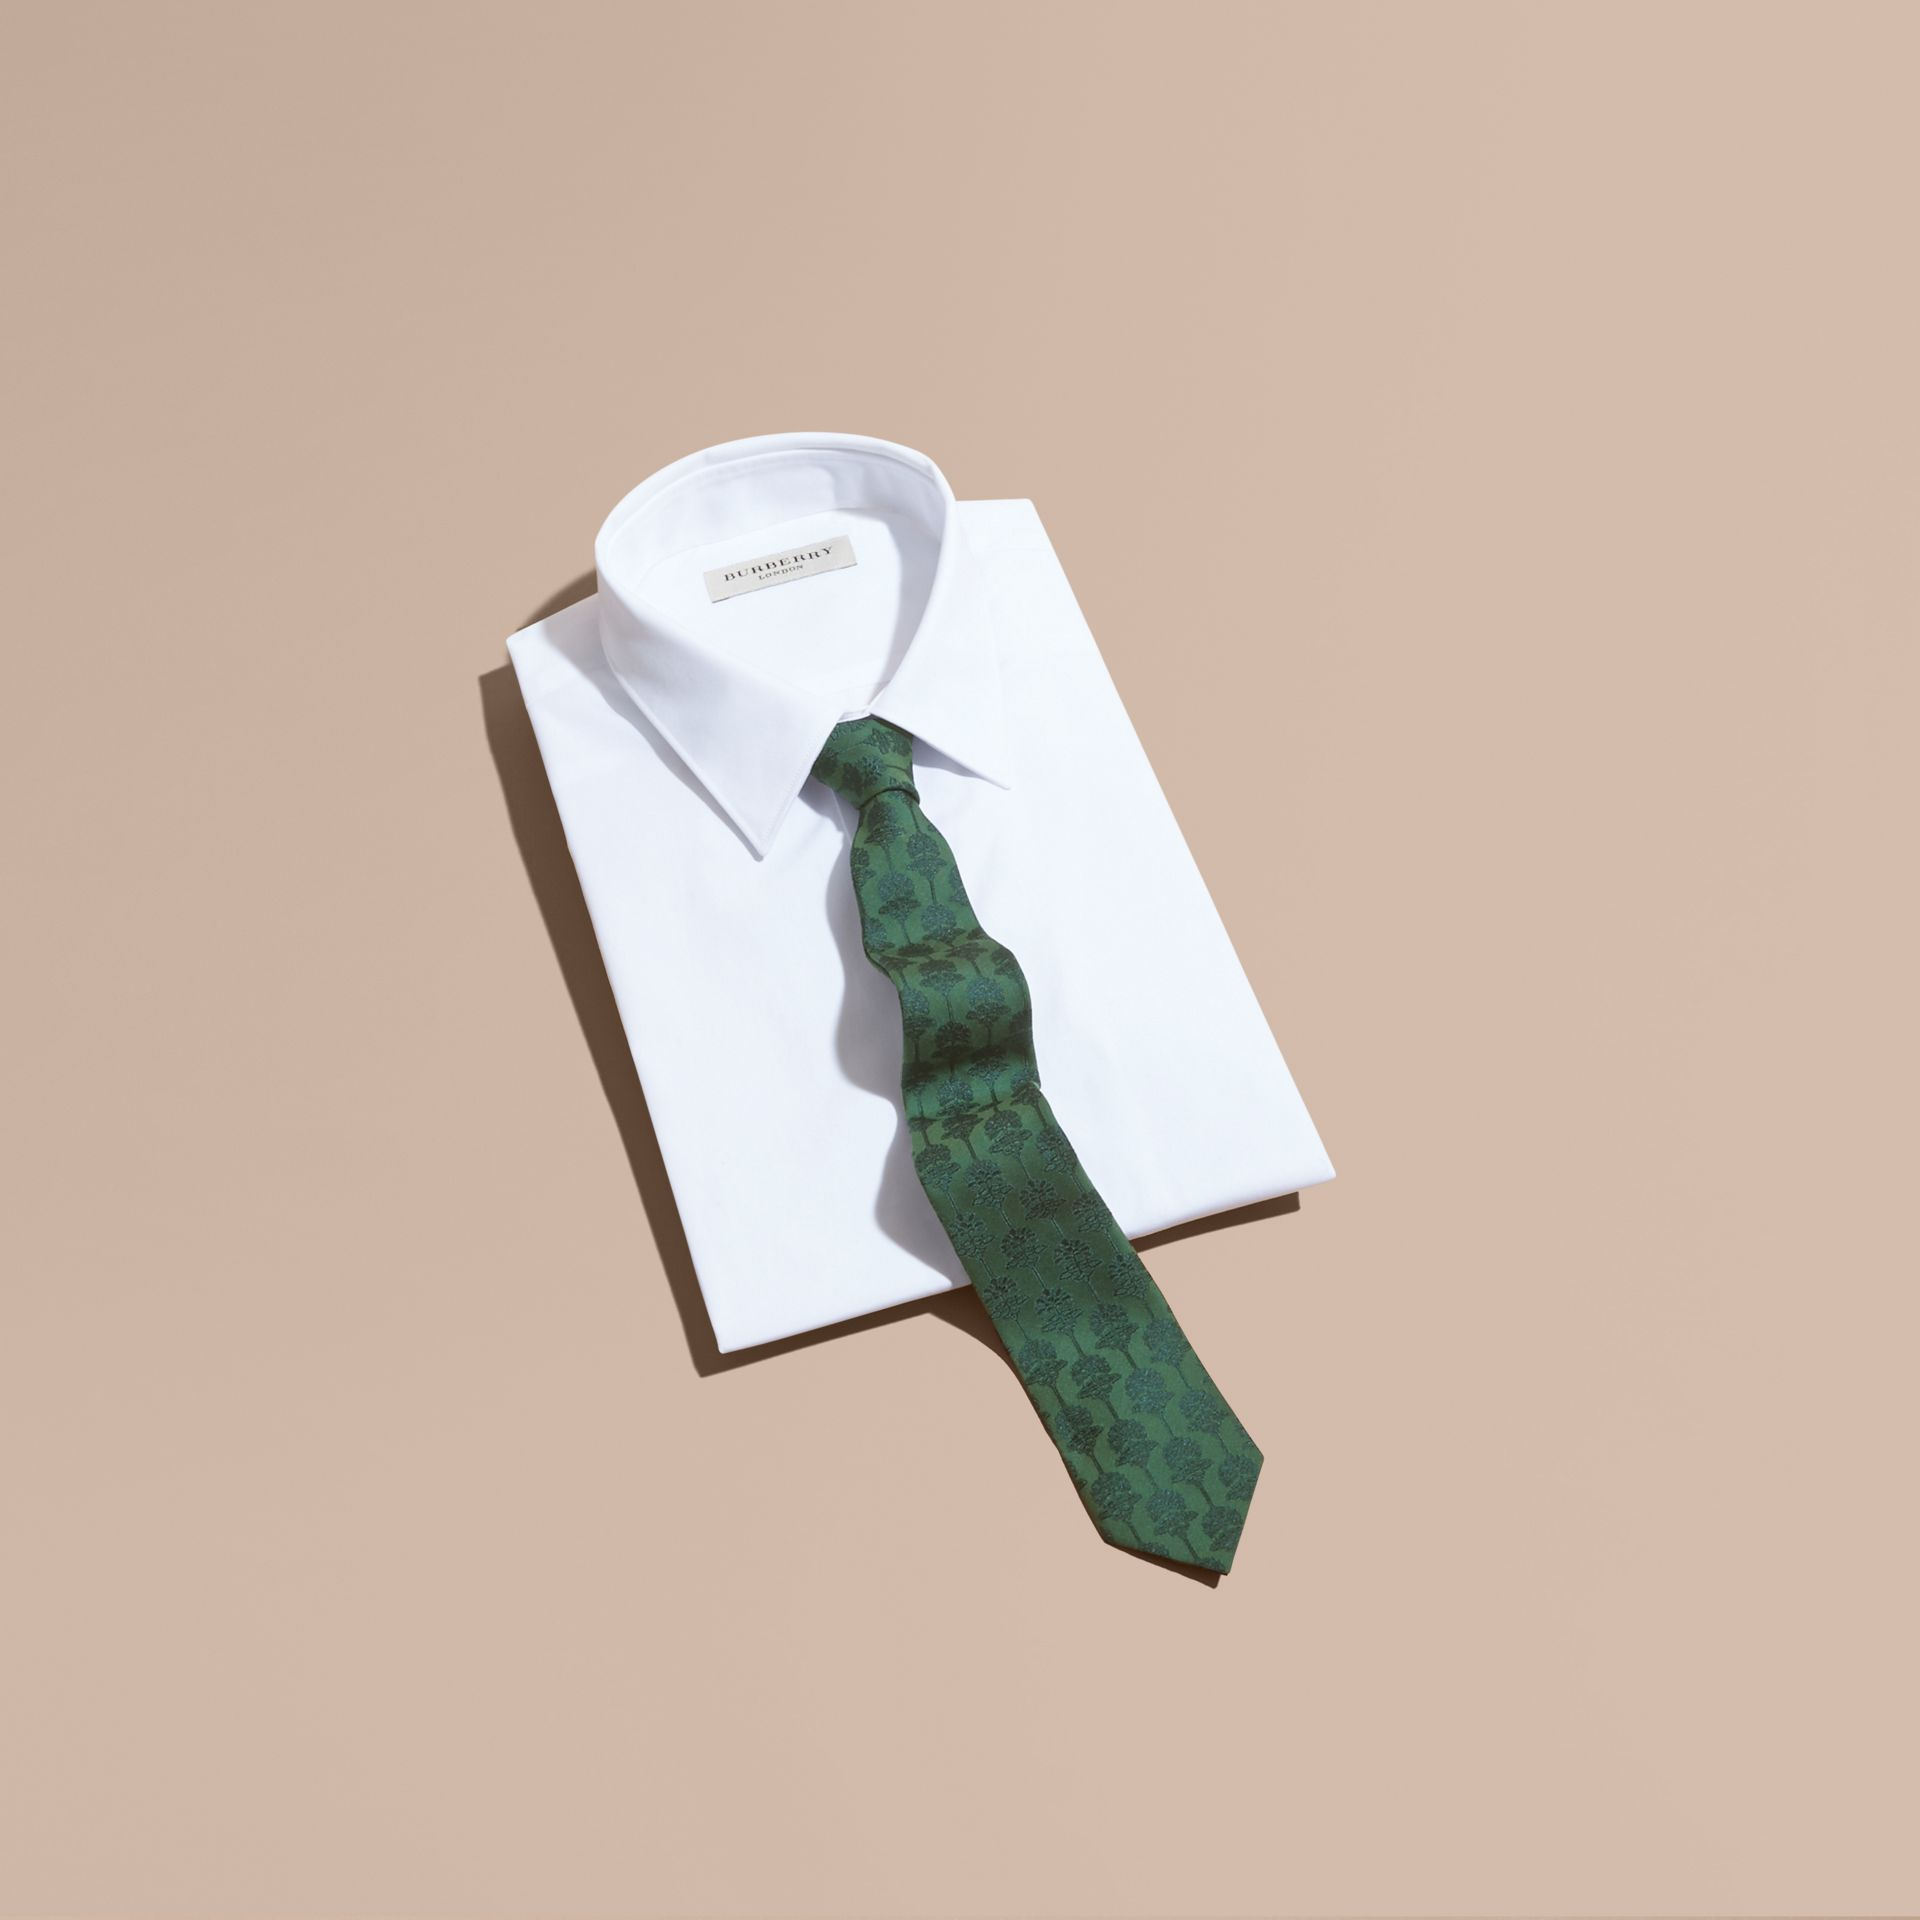 Slim Cut Floral Jacquard Silk Cotton Tie in Pine Green - Men | Burberry - gallery image 4